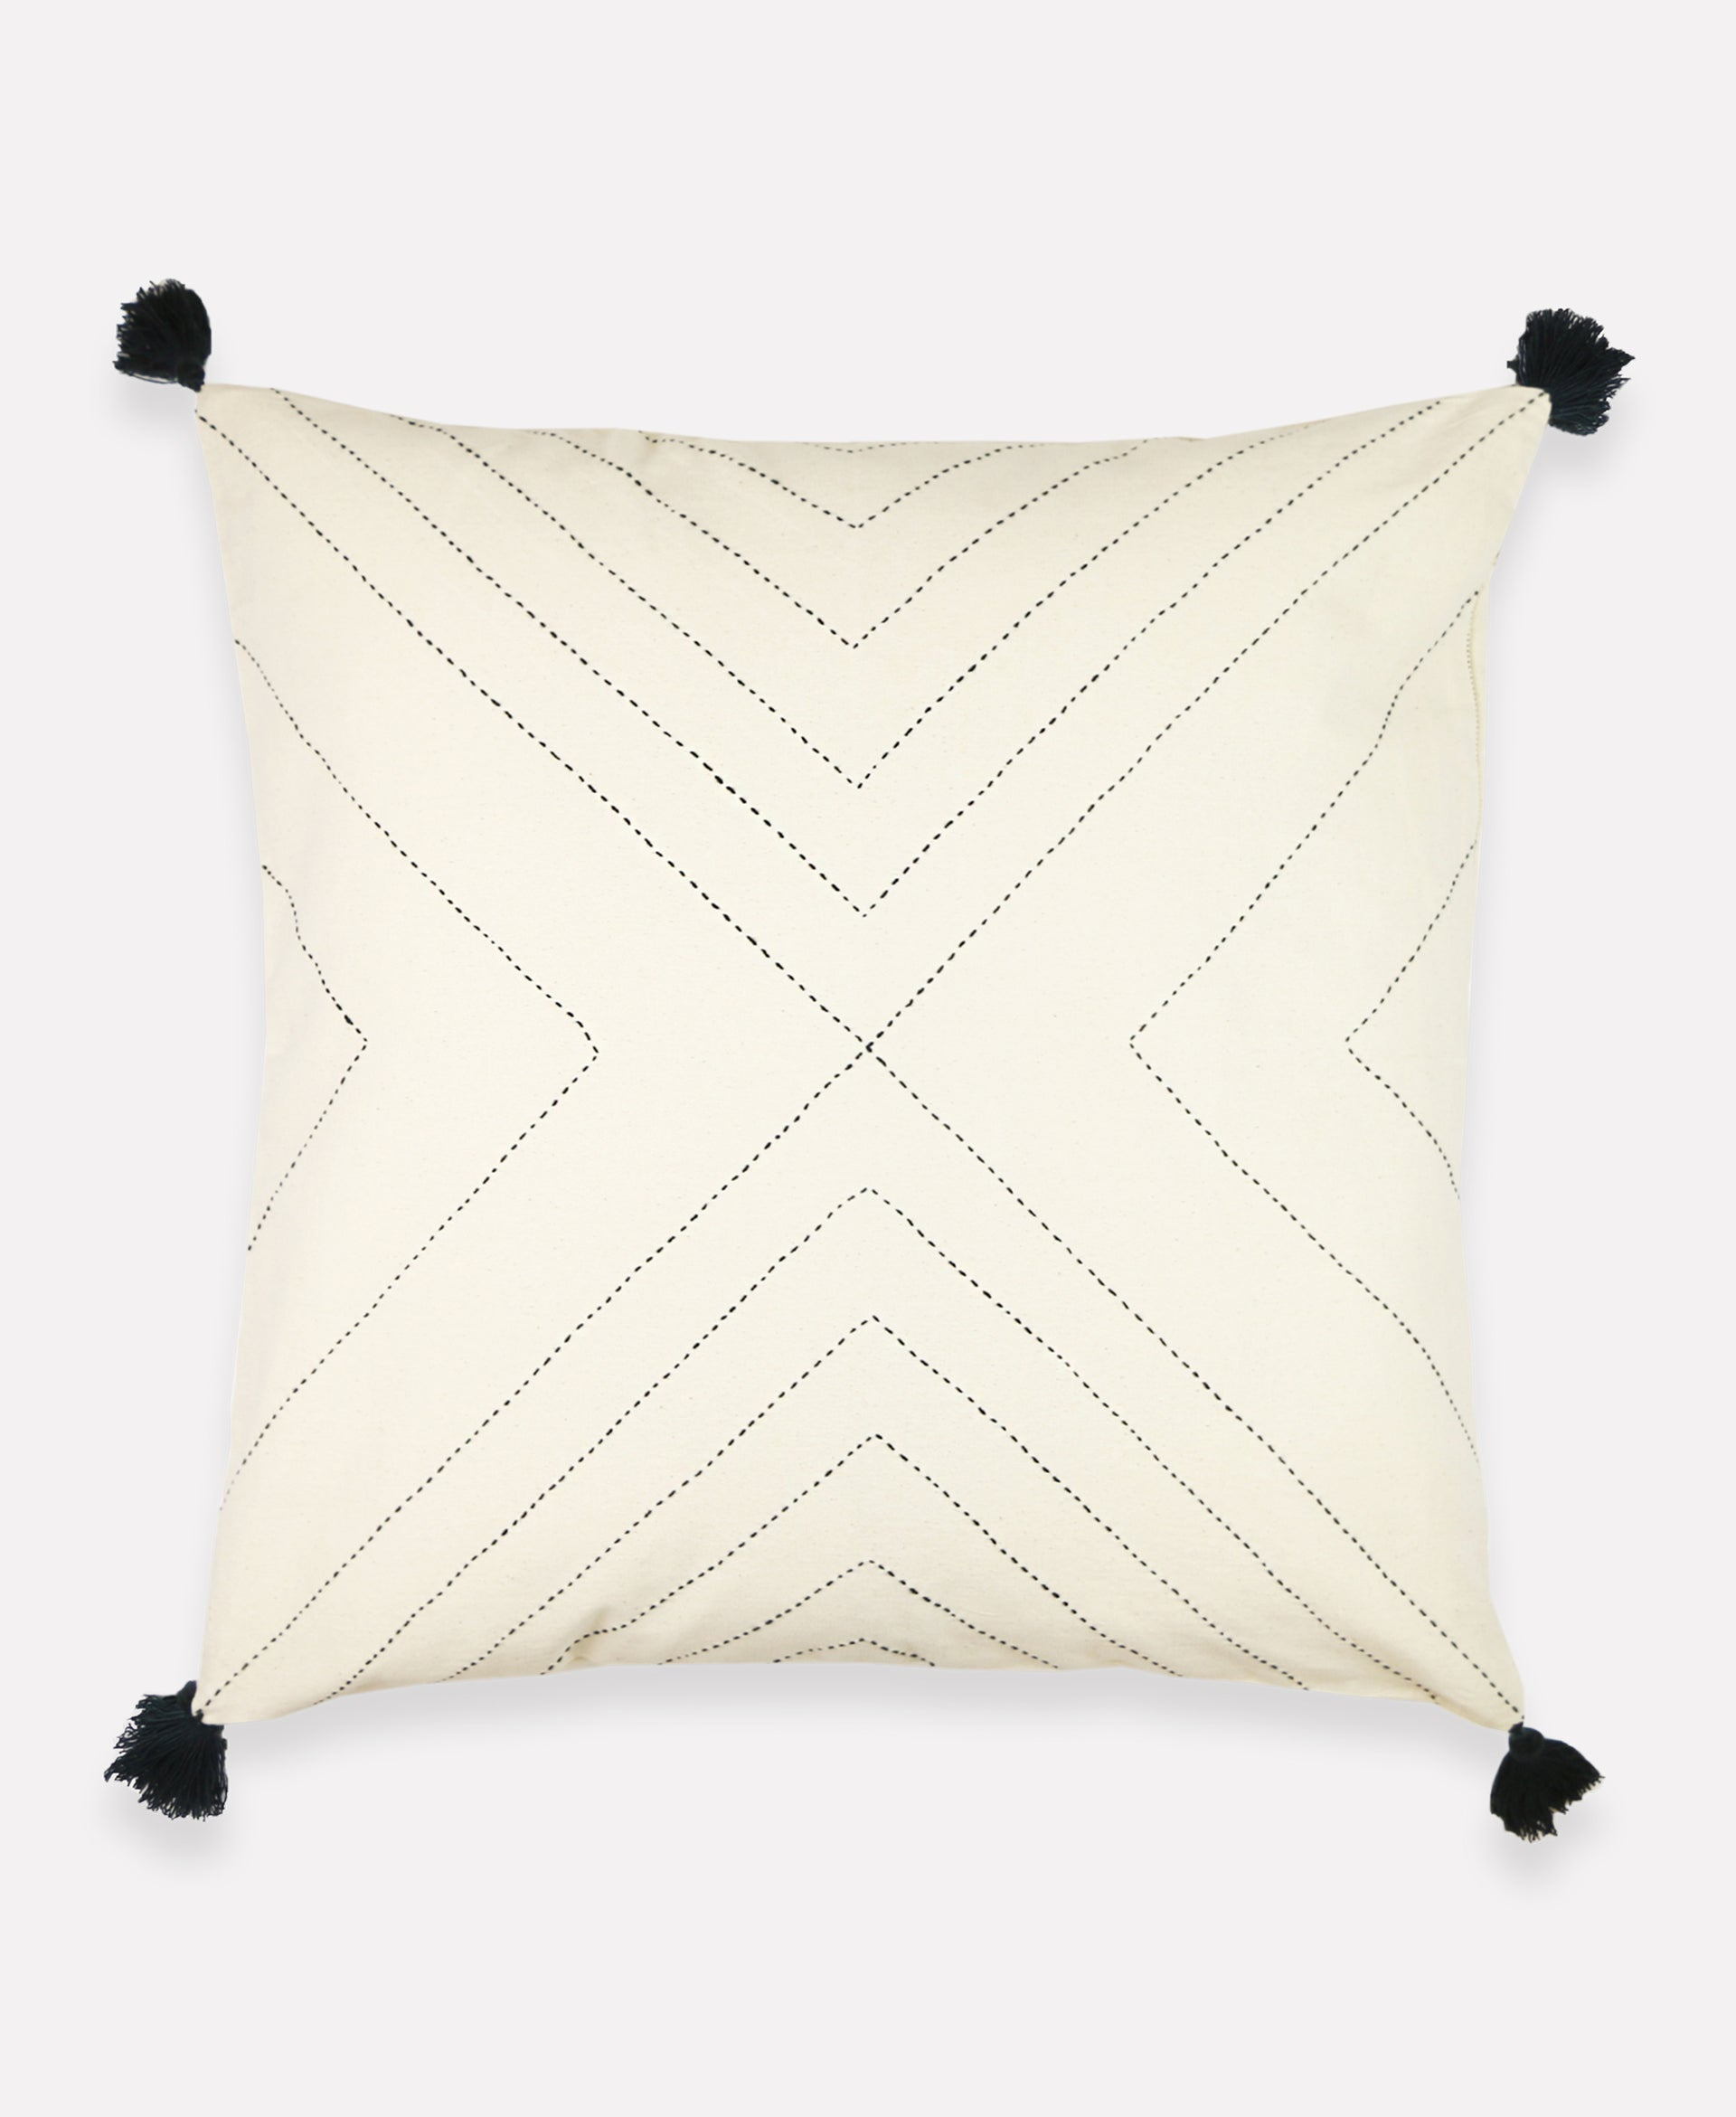 BONE ARROW THROW PILLOWS